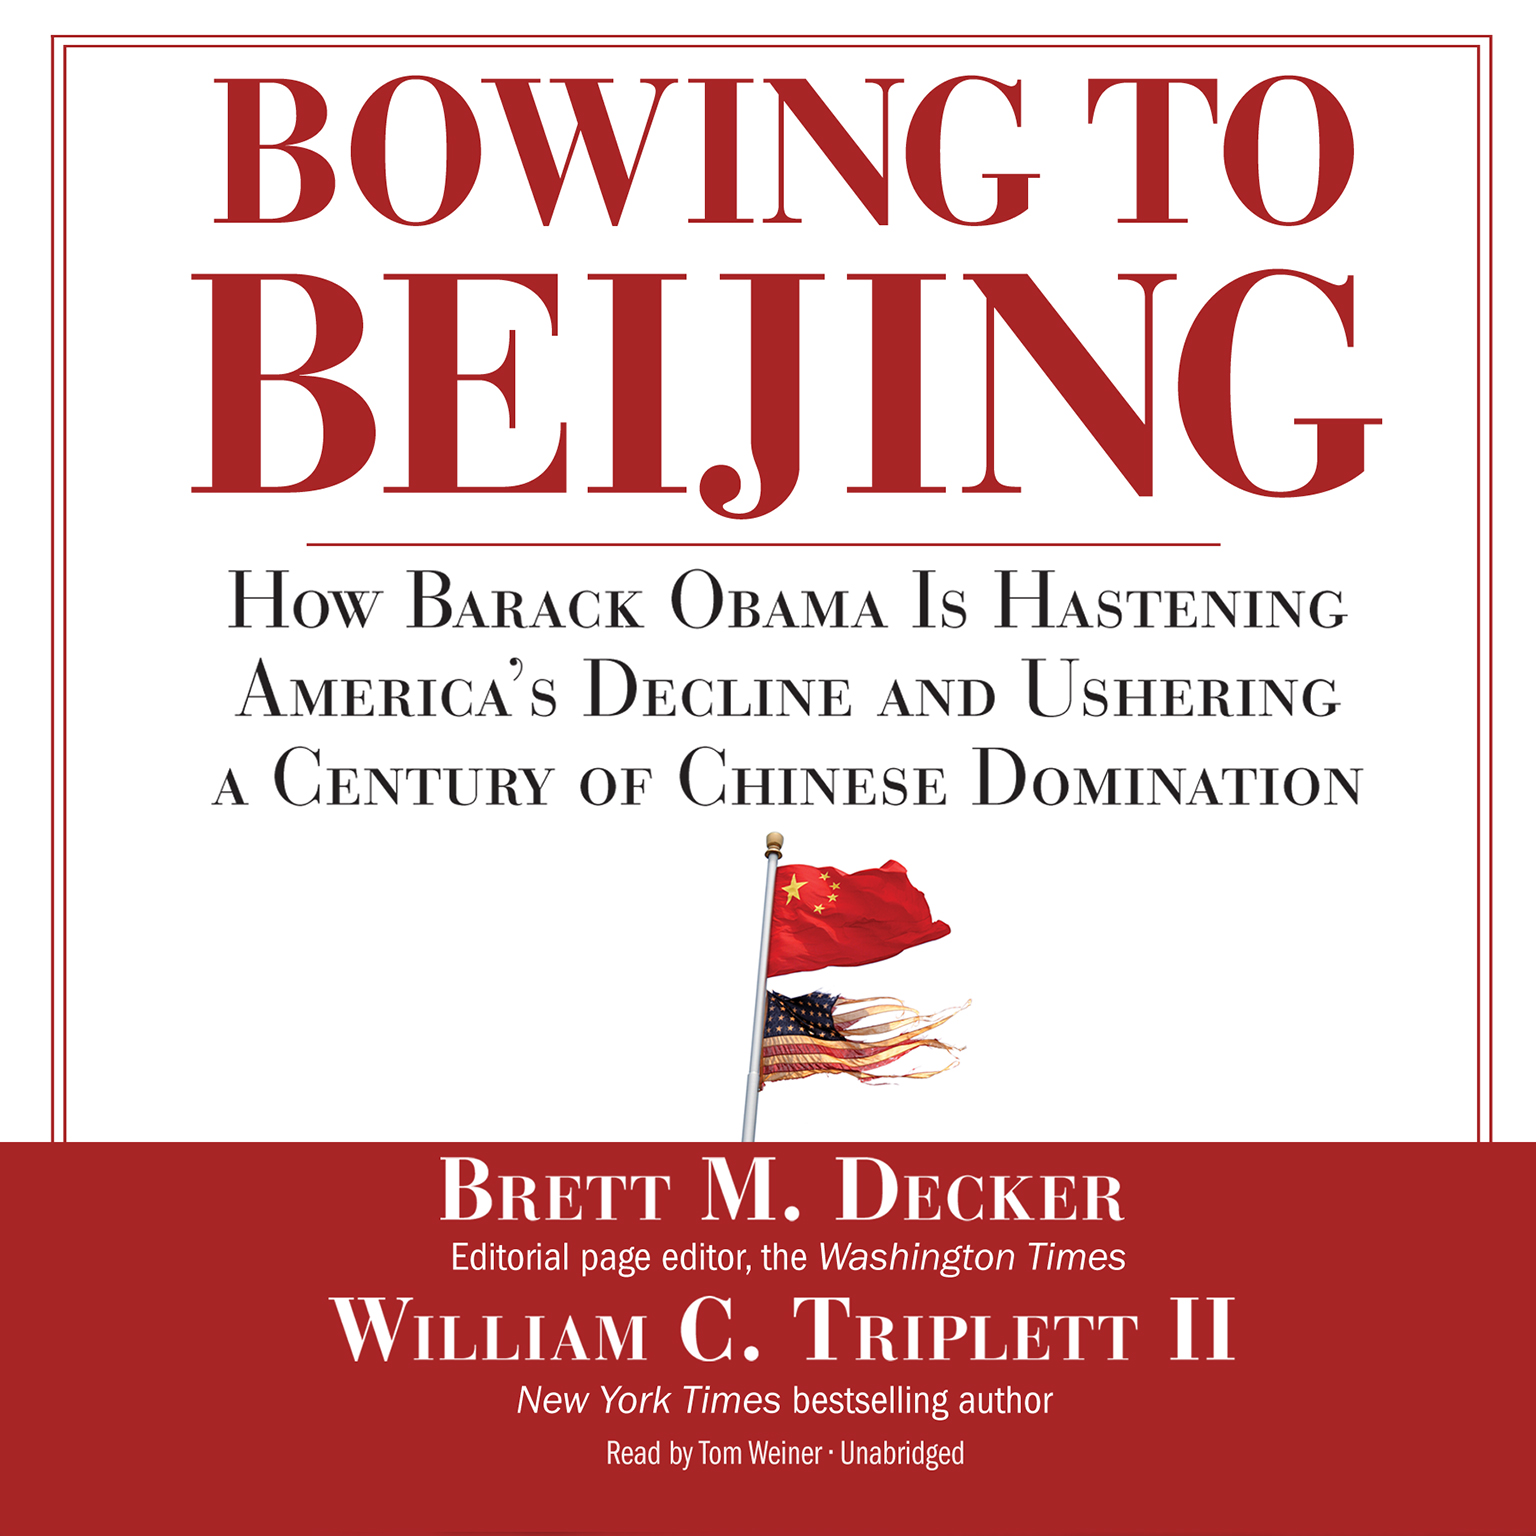 Printable Bowing to Beijing: How Barack Obama Is Hastening America's Decline and Ushering a Century of Chinese Domination Audiobook Cover Art